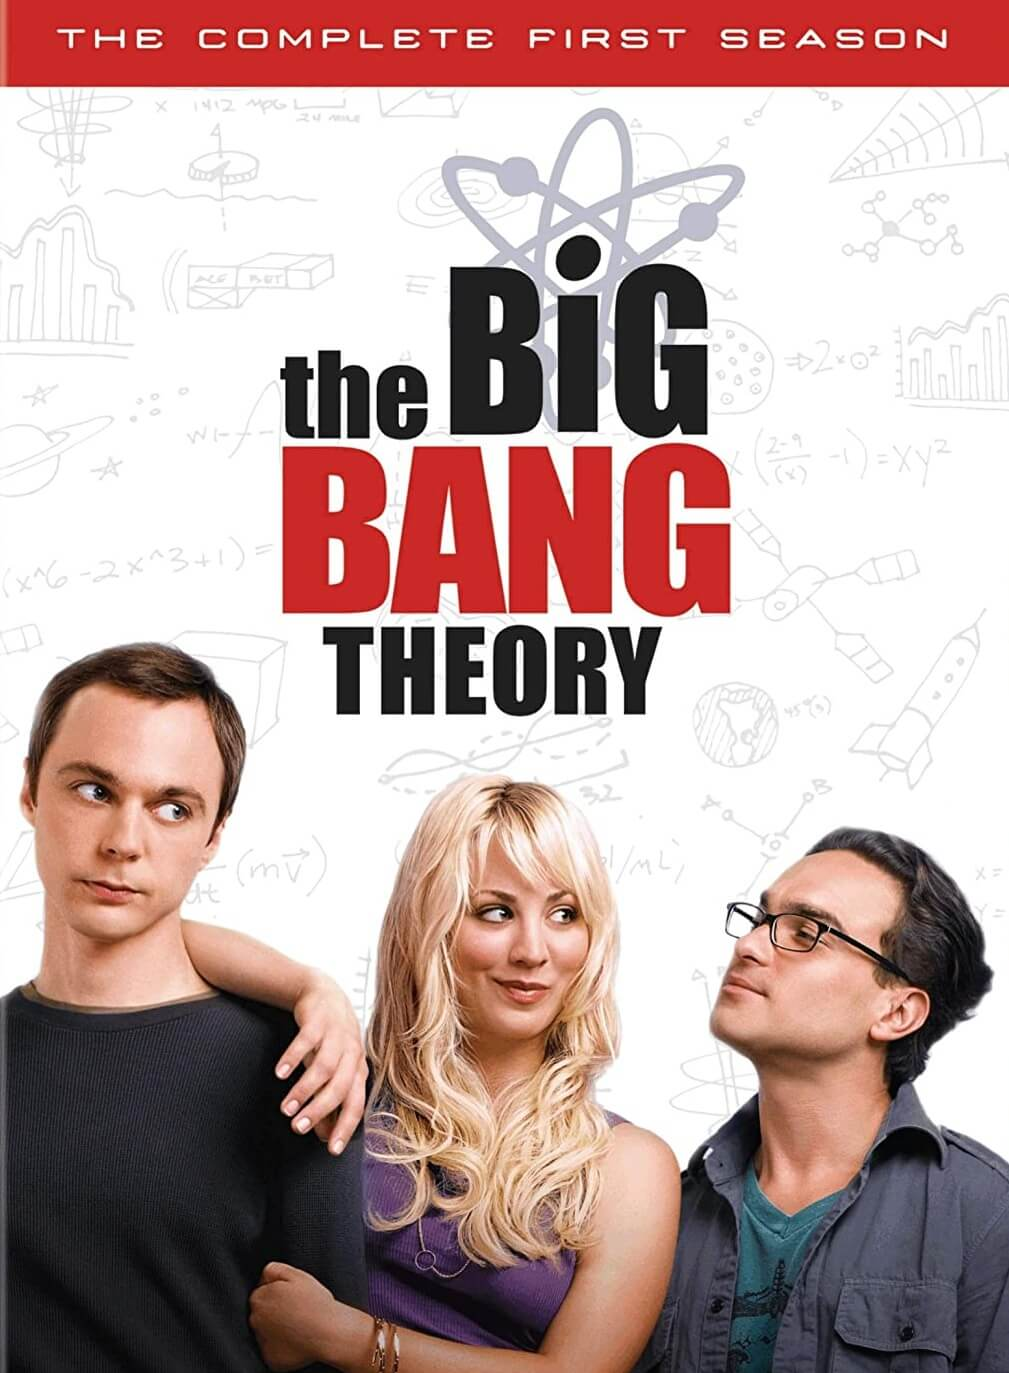 The Big Bang Theory S01 E10